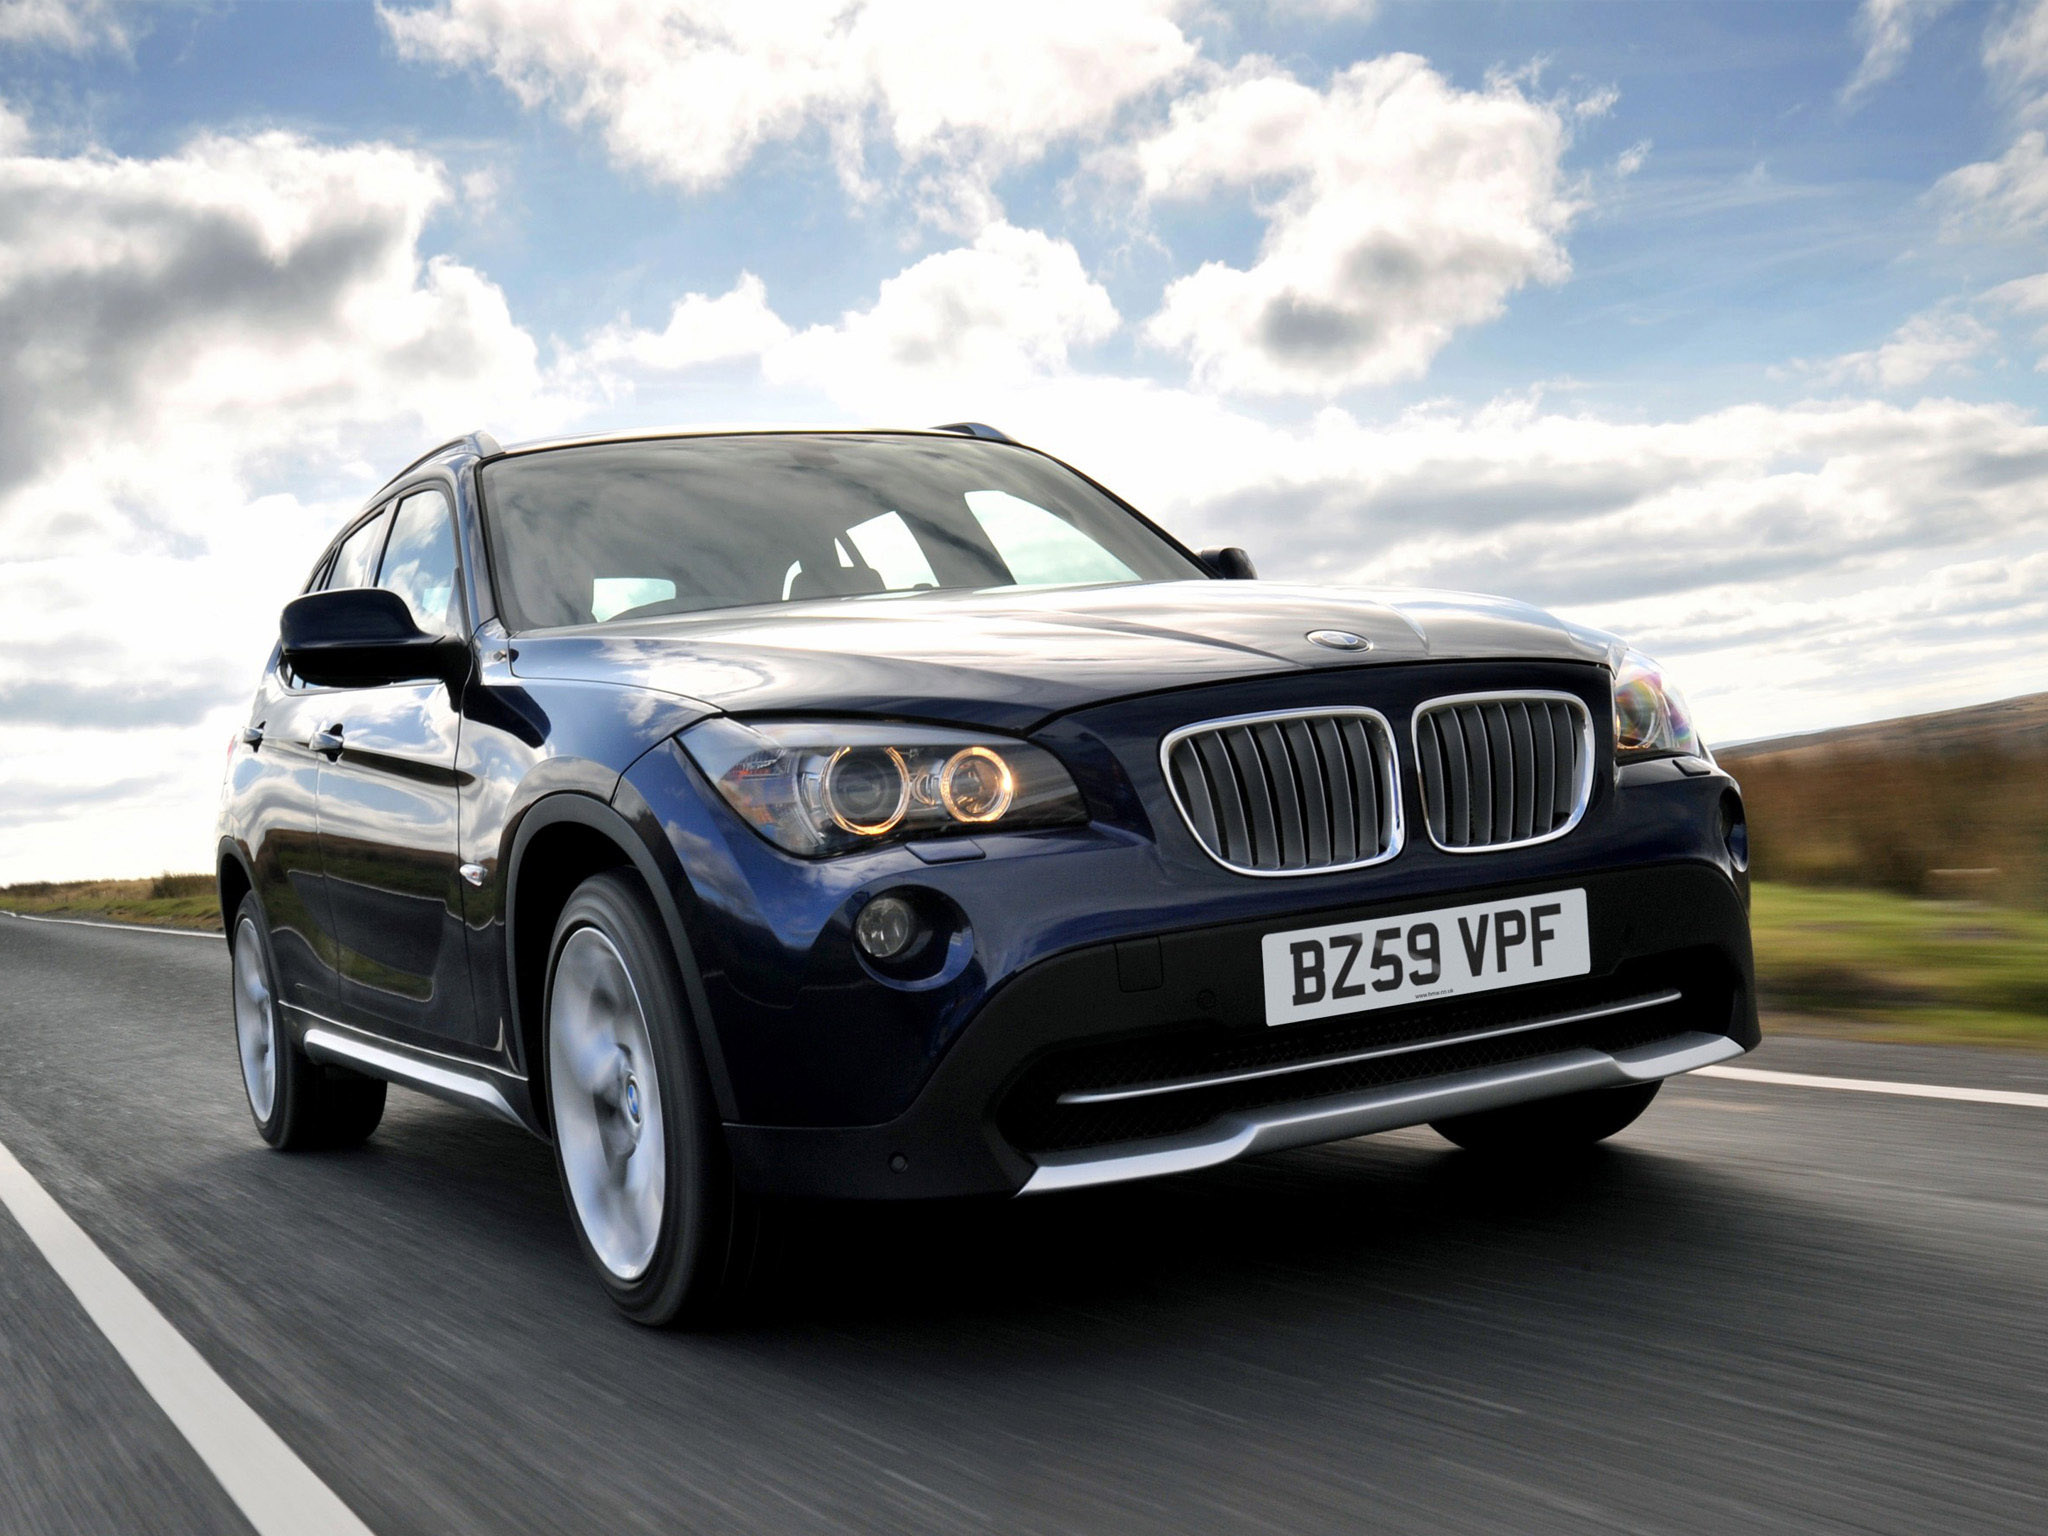 bmw x1 xdrive20d uk e84 2009 bmw x1 xdrive20d uk e84 2009 photo 06 car in pictures car photo. Black Bedroom Furniture Sets. Home Design Ideas